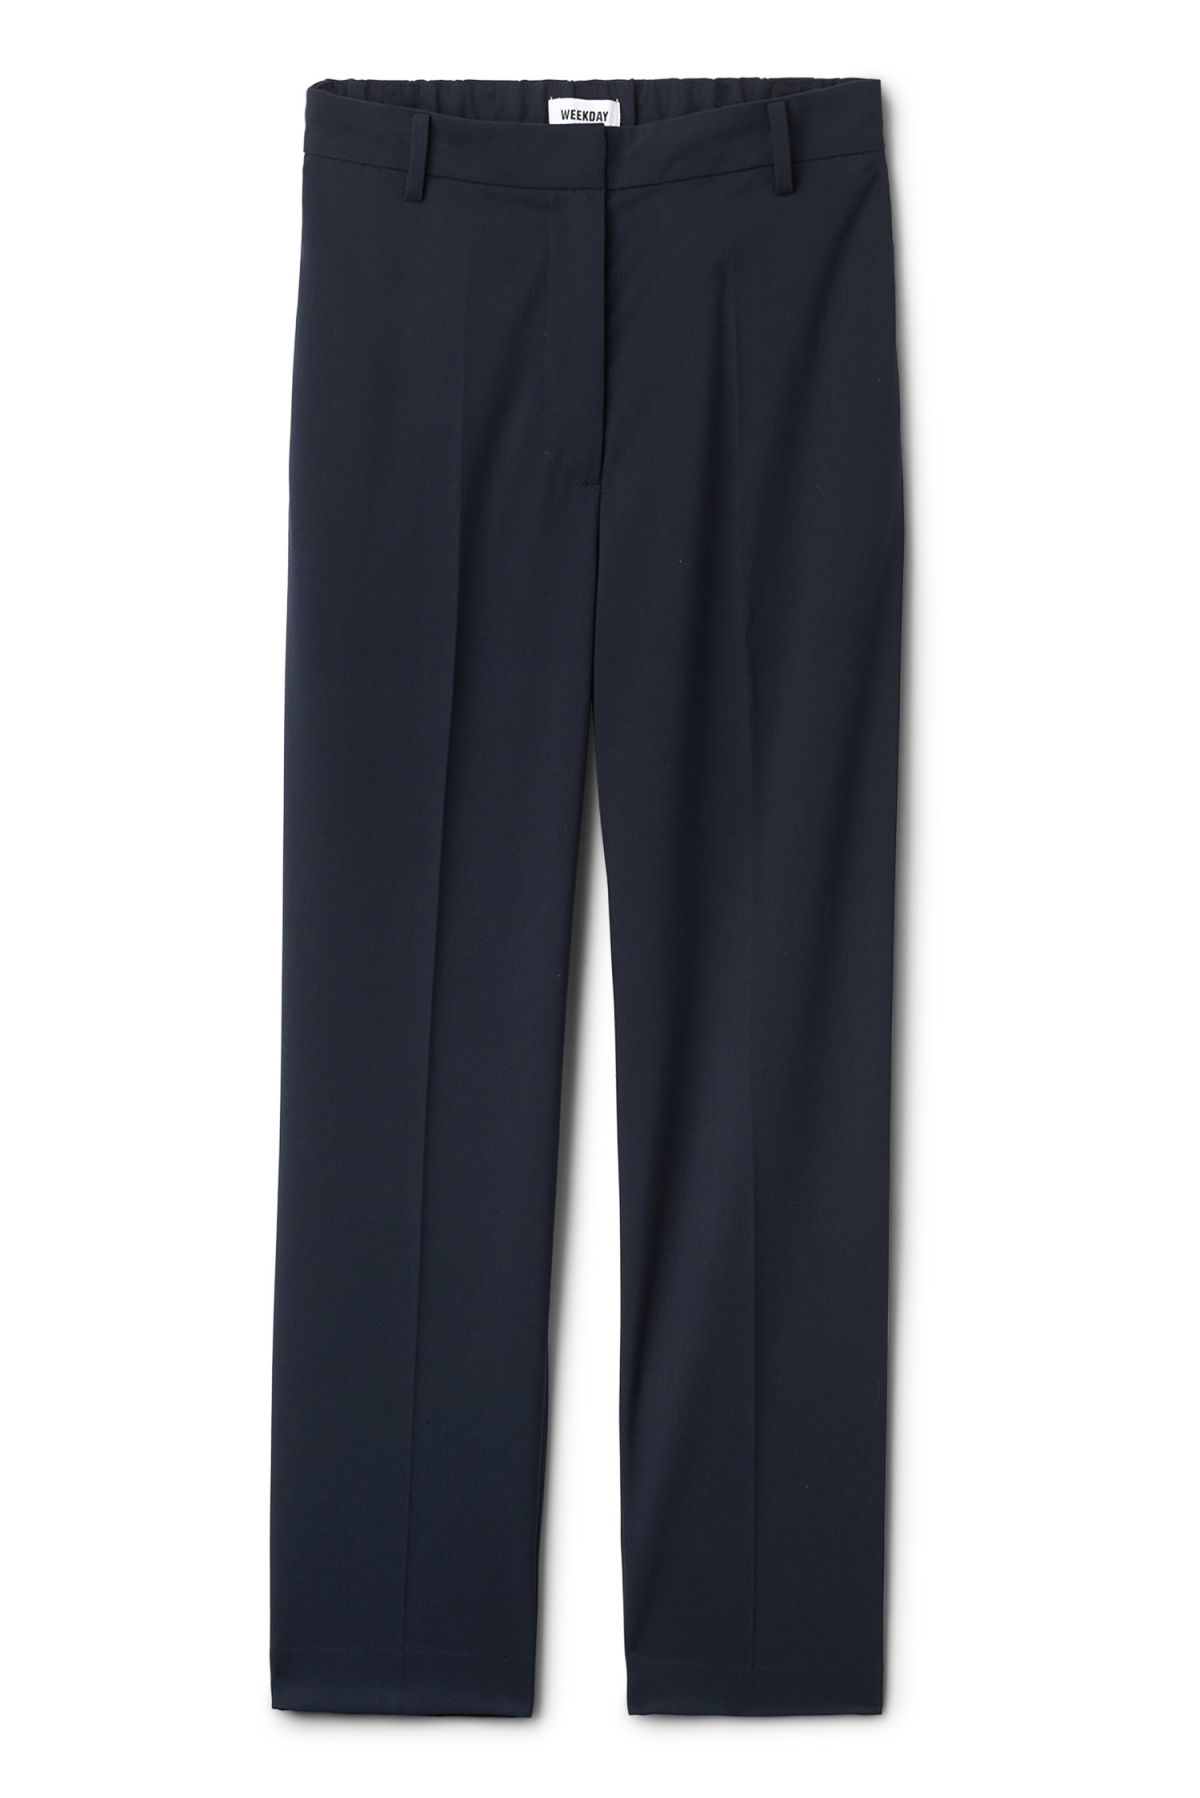 f79e8b609c79 Shoptagr | Weekday Tailored Trousers Blue by Weekday